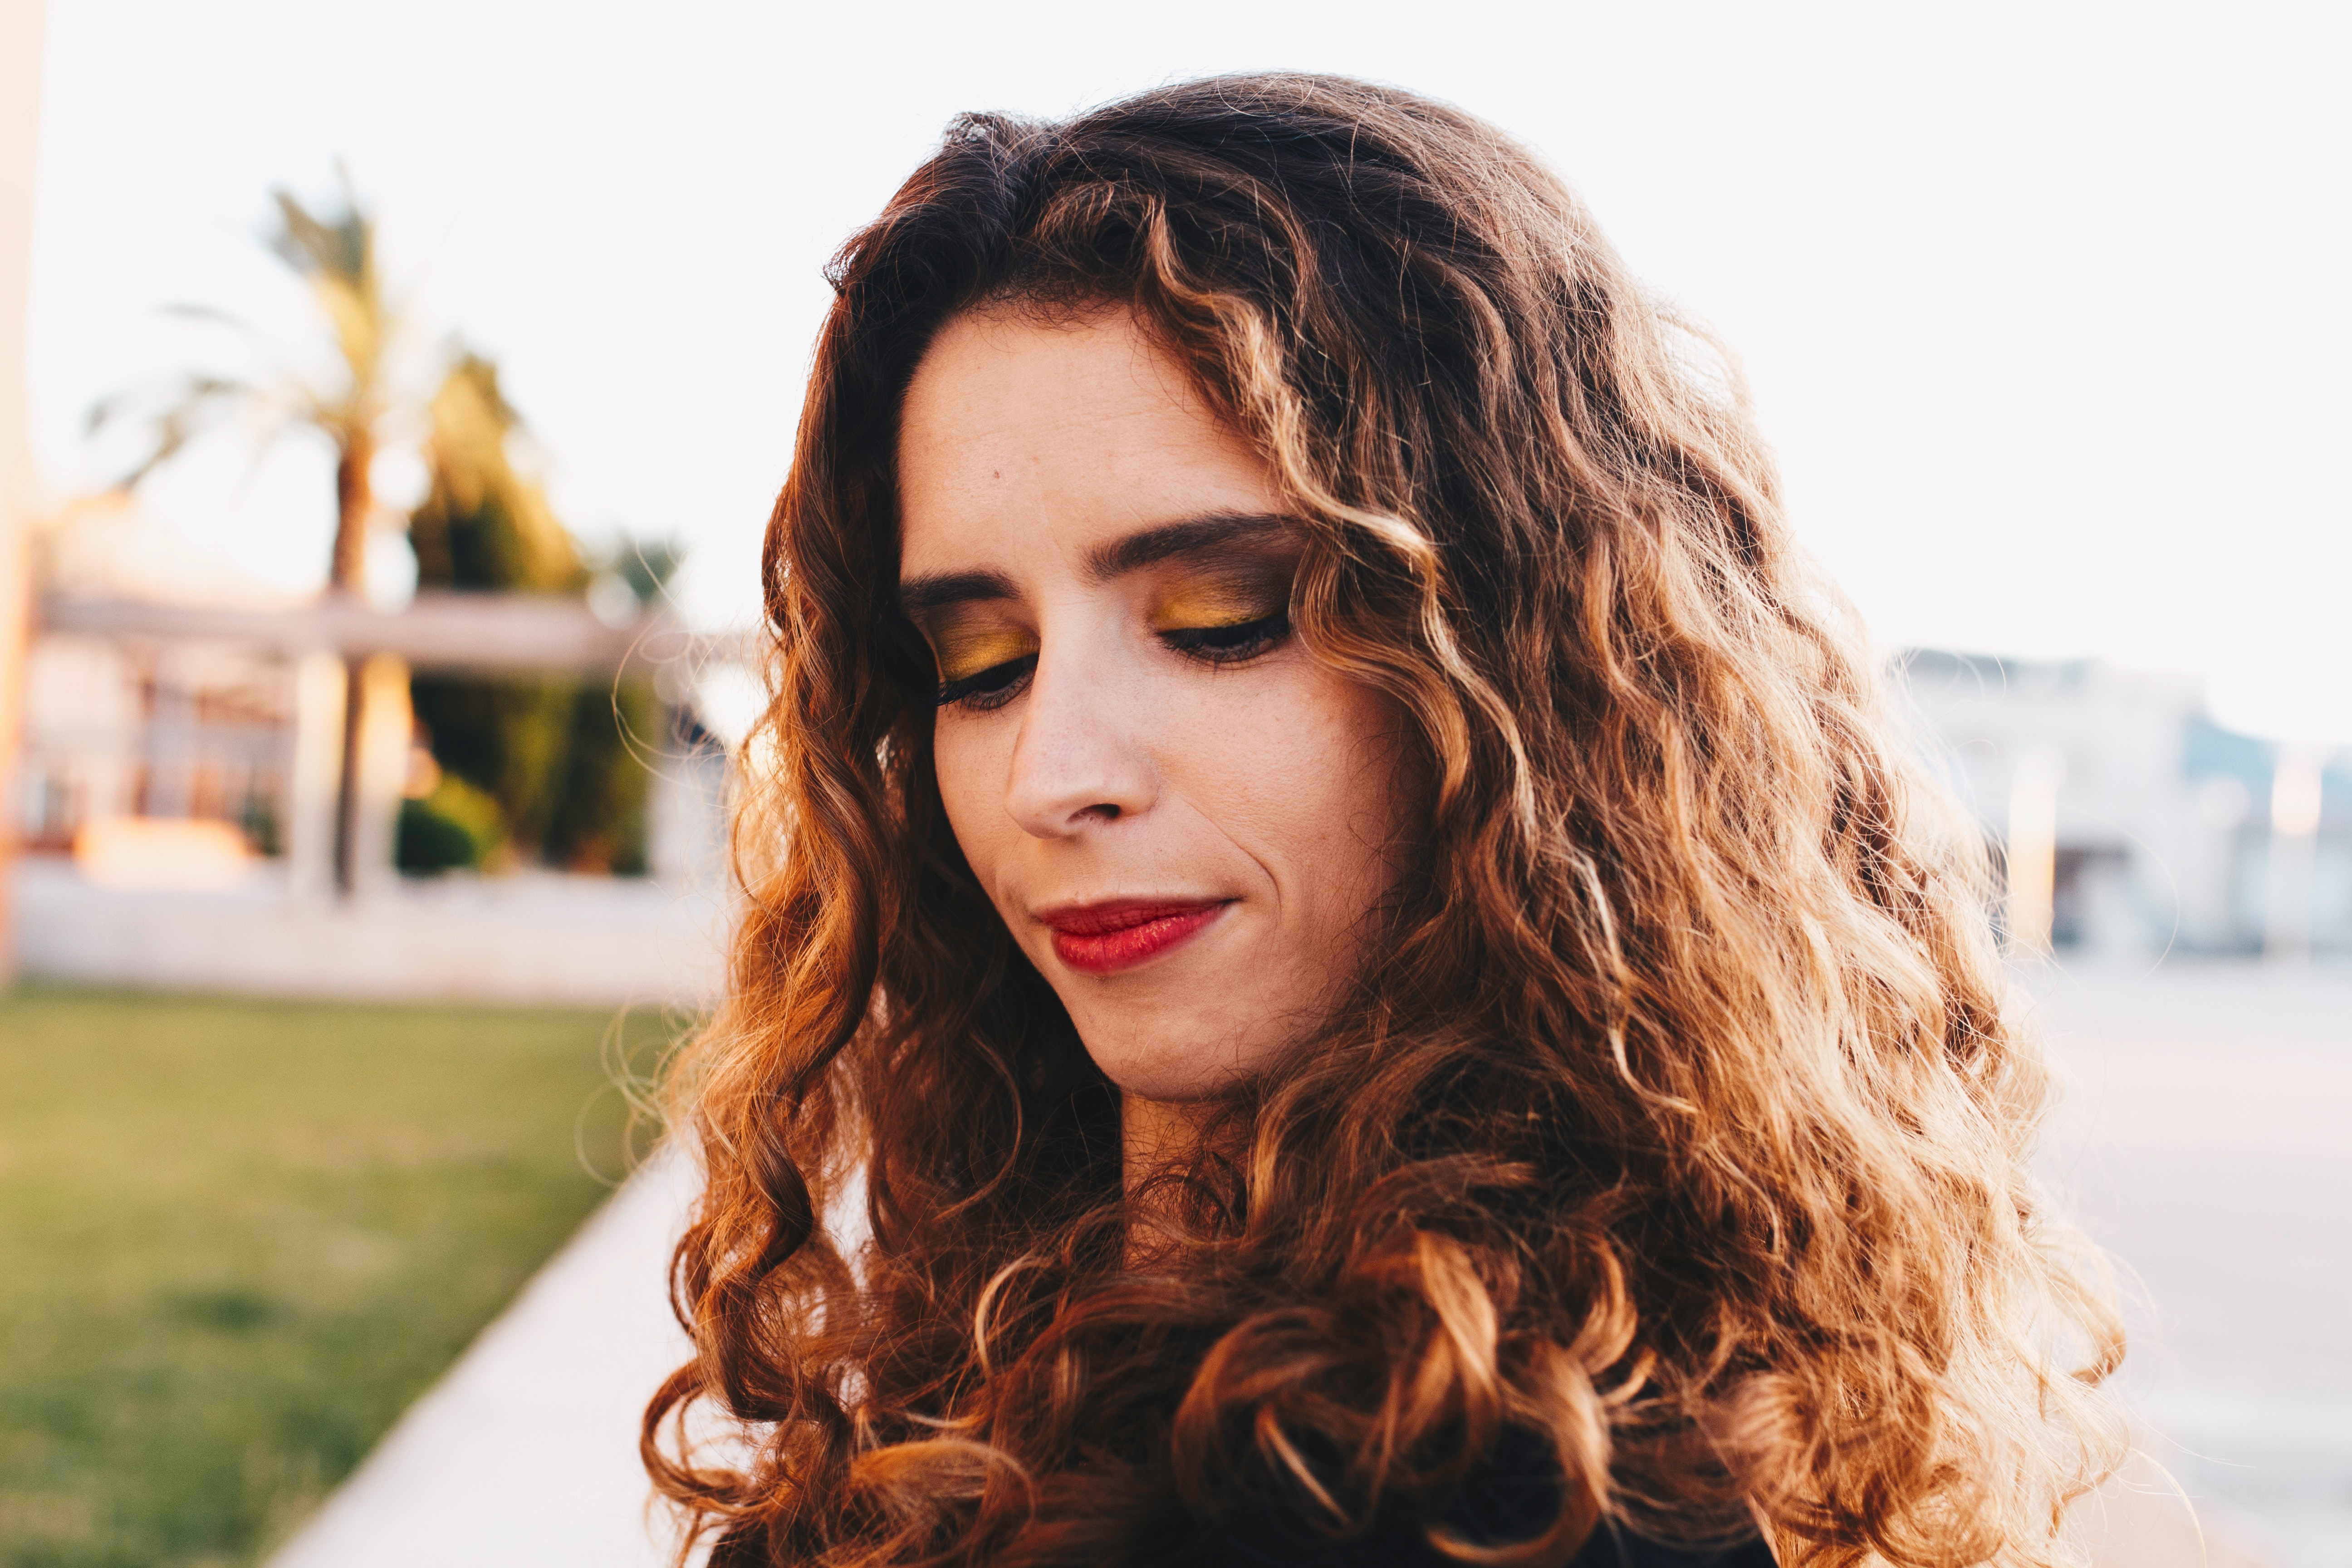 Curly Brown Haired Woman Wearing Black Shirt With Red Lipstick Looking Down, Blurred background, Outdoors, Woman, Wear, HQ Photo